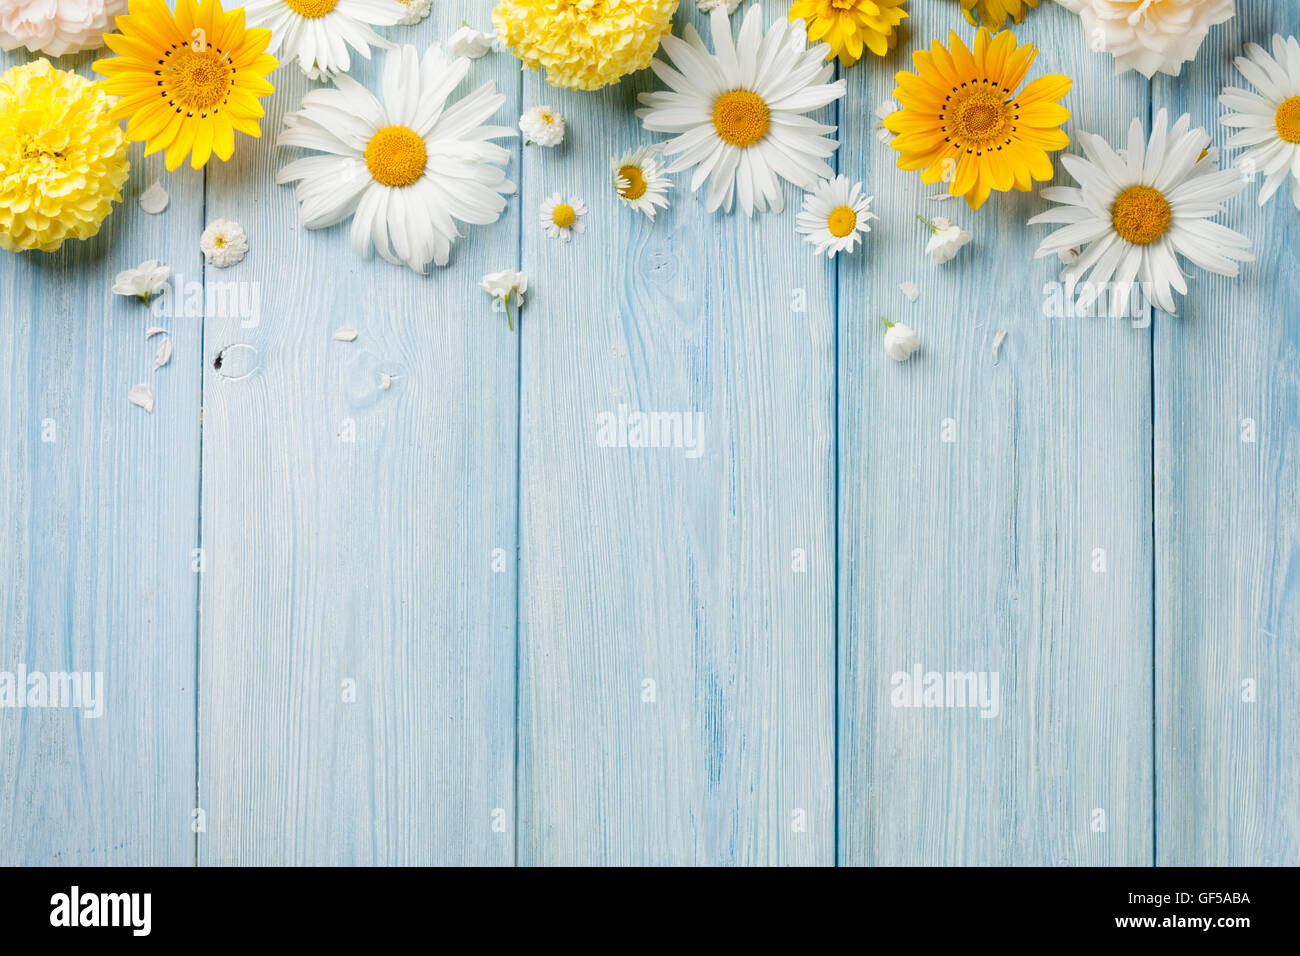 Garden flowers over blue wooden table background. Backdrop with copy space - Stock Image